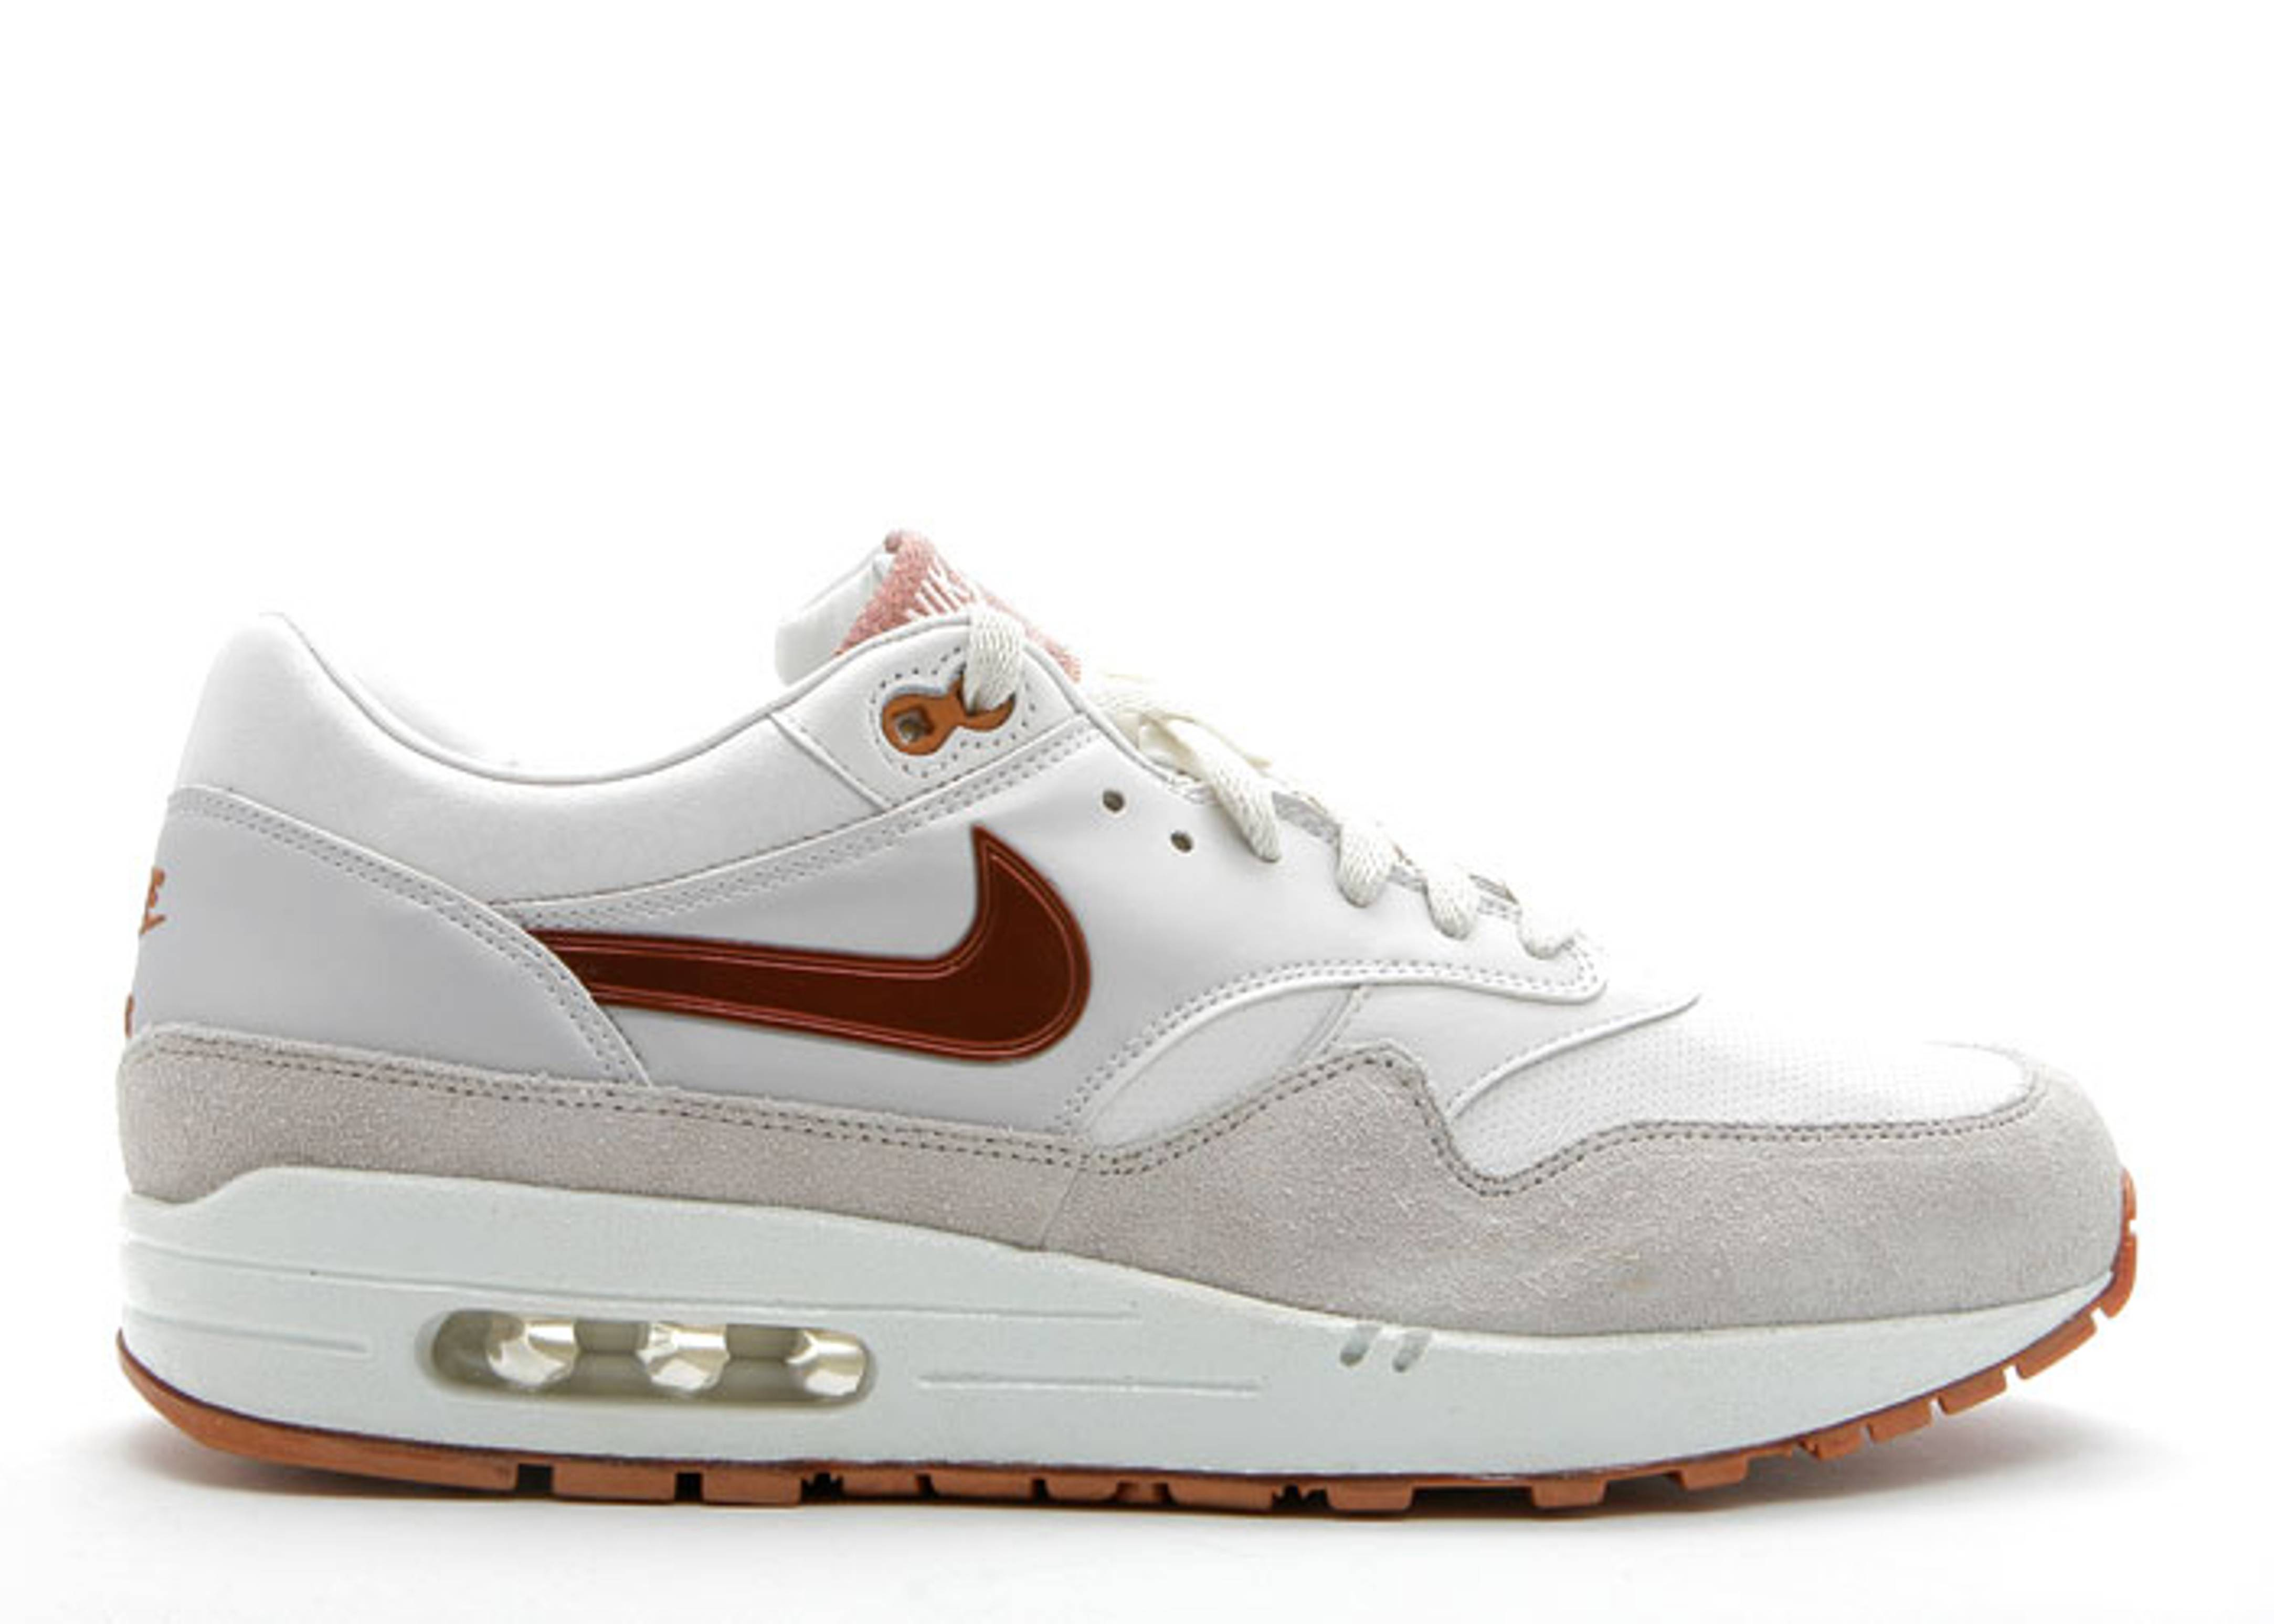 Air Max 1 Premium Sp - Nike - 314252 121 - swan mtlc hazelnut-light ... 72f58b0cc